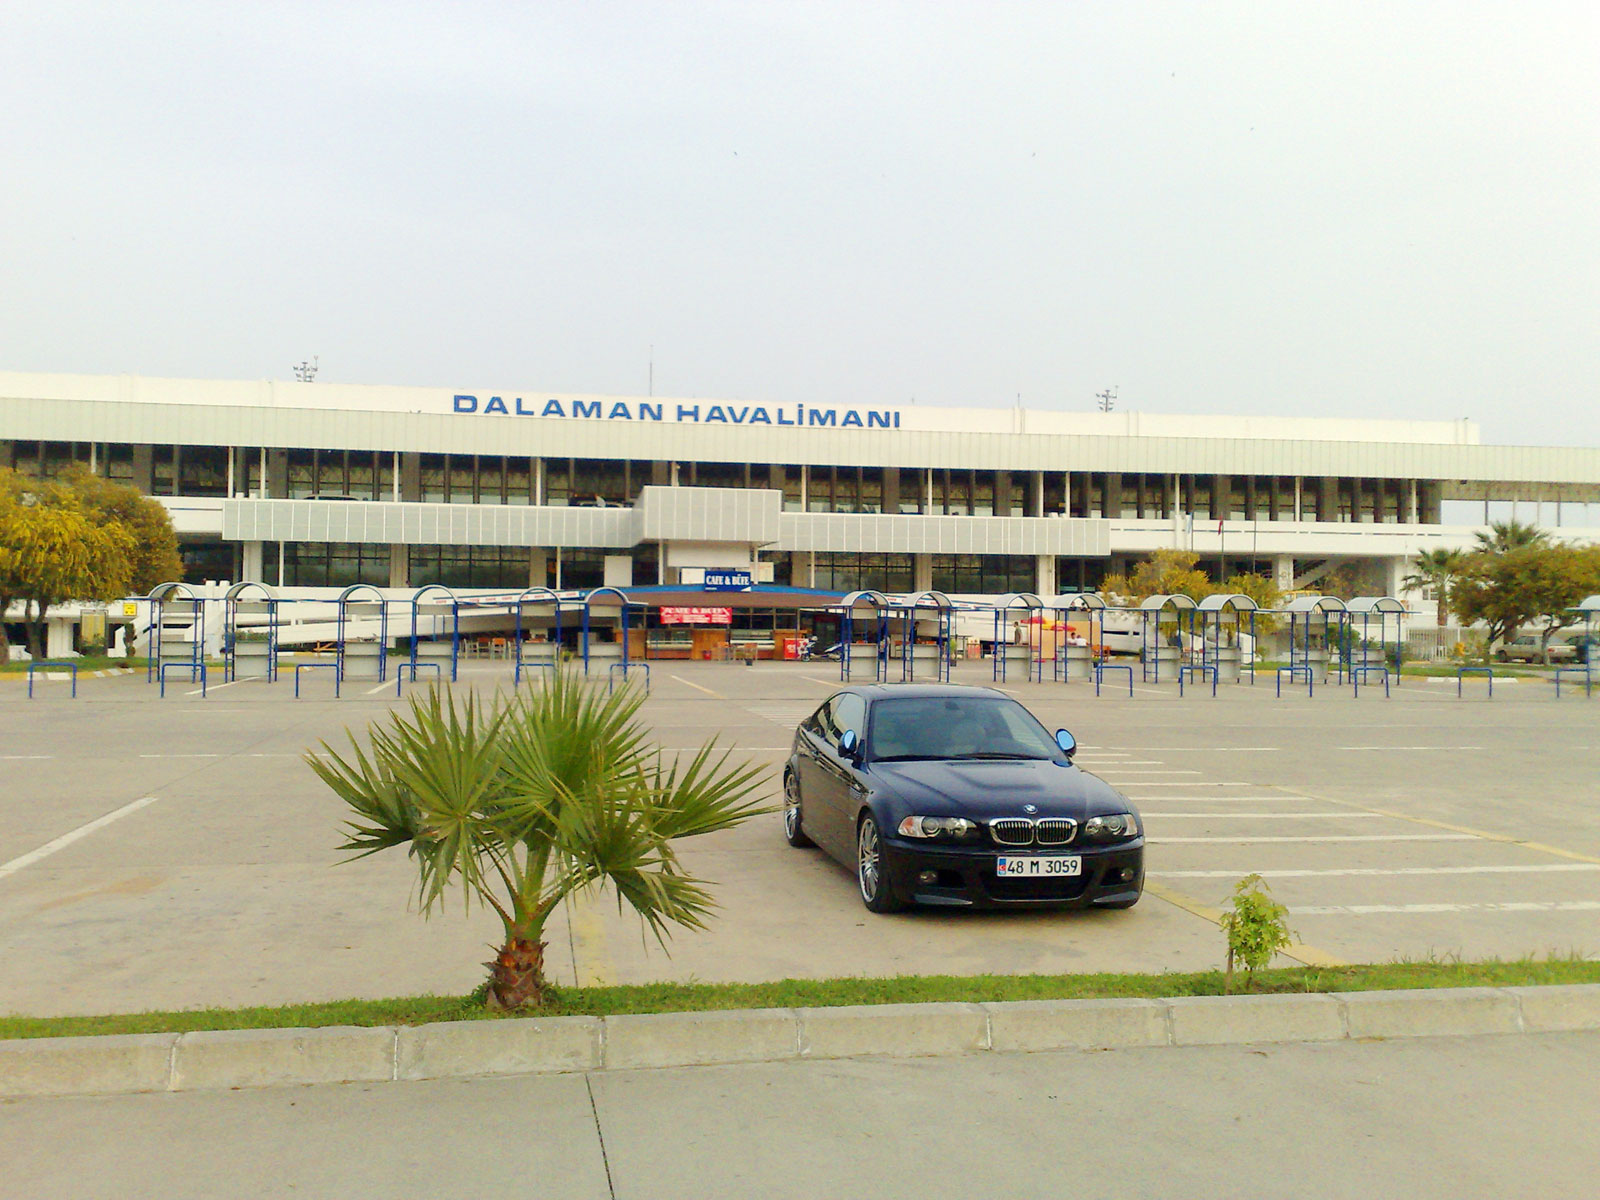 dalamanairport03outside